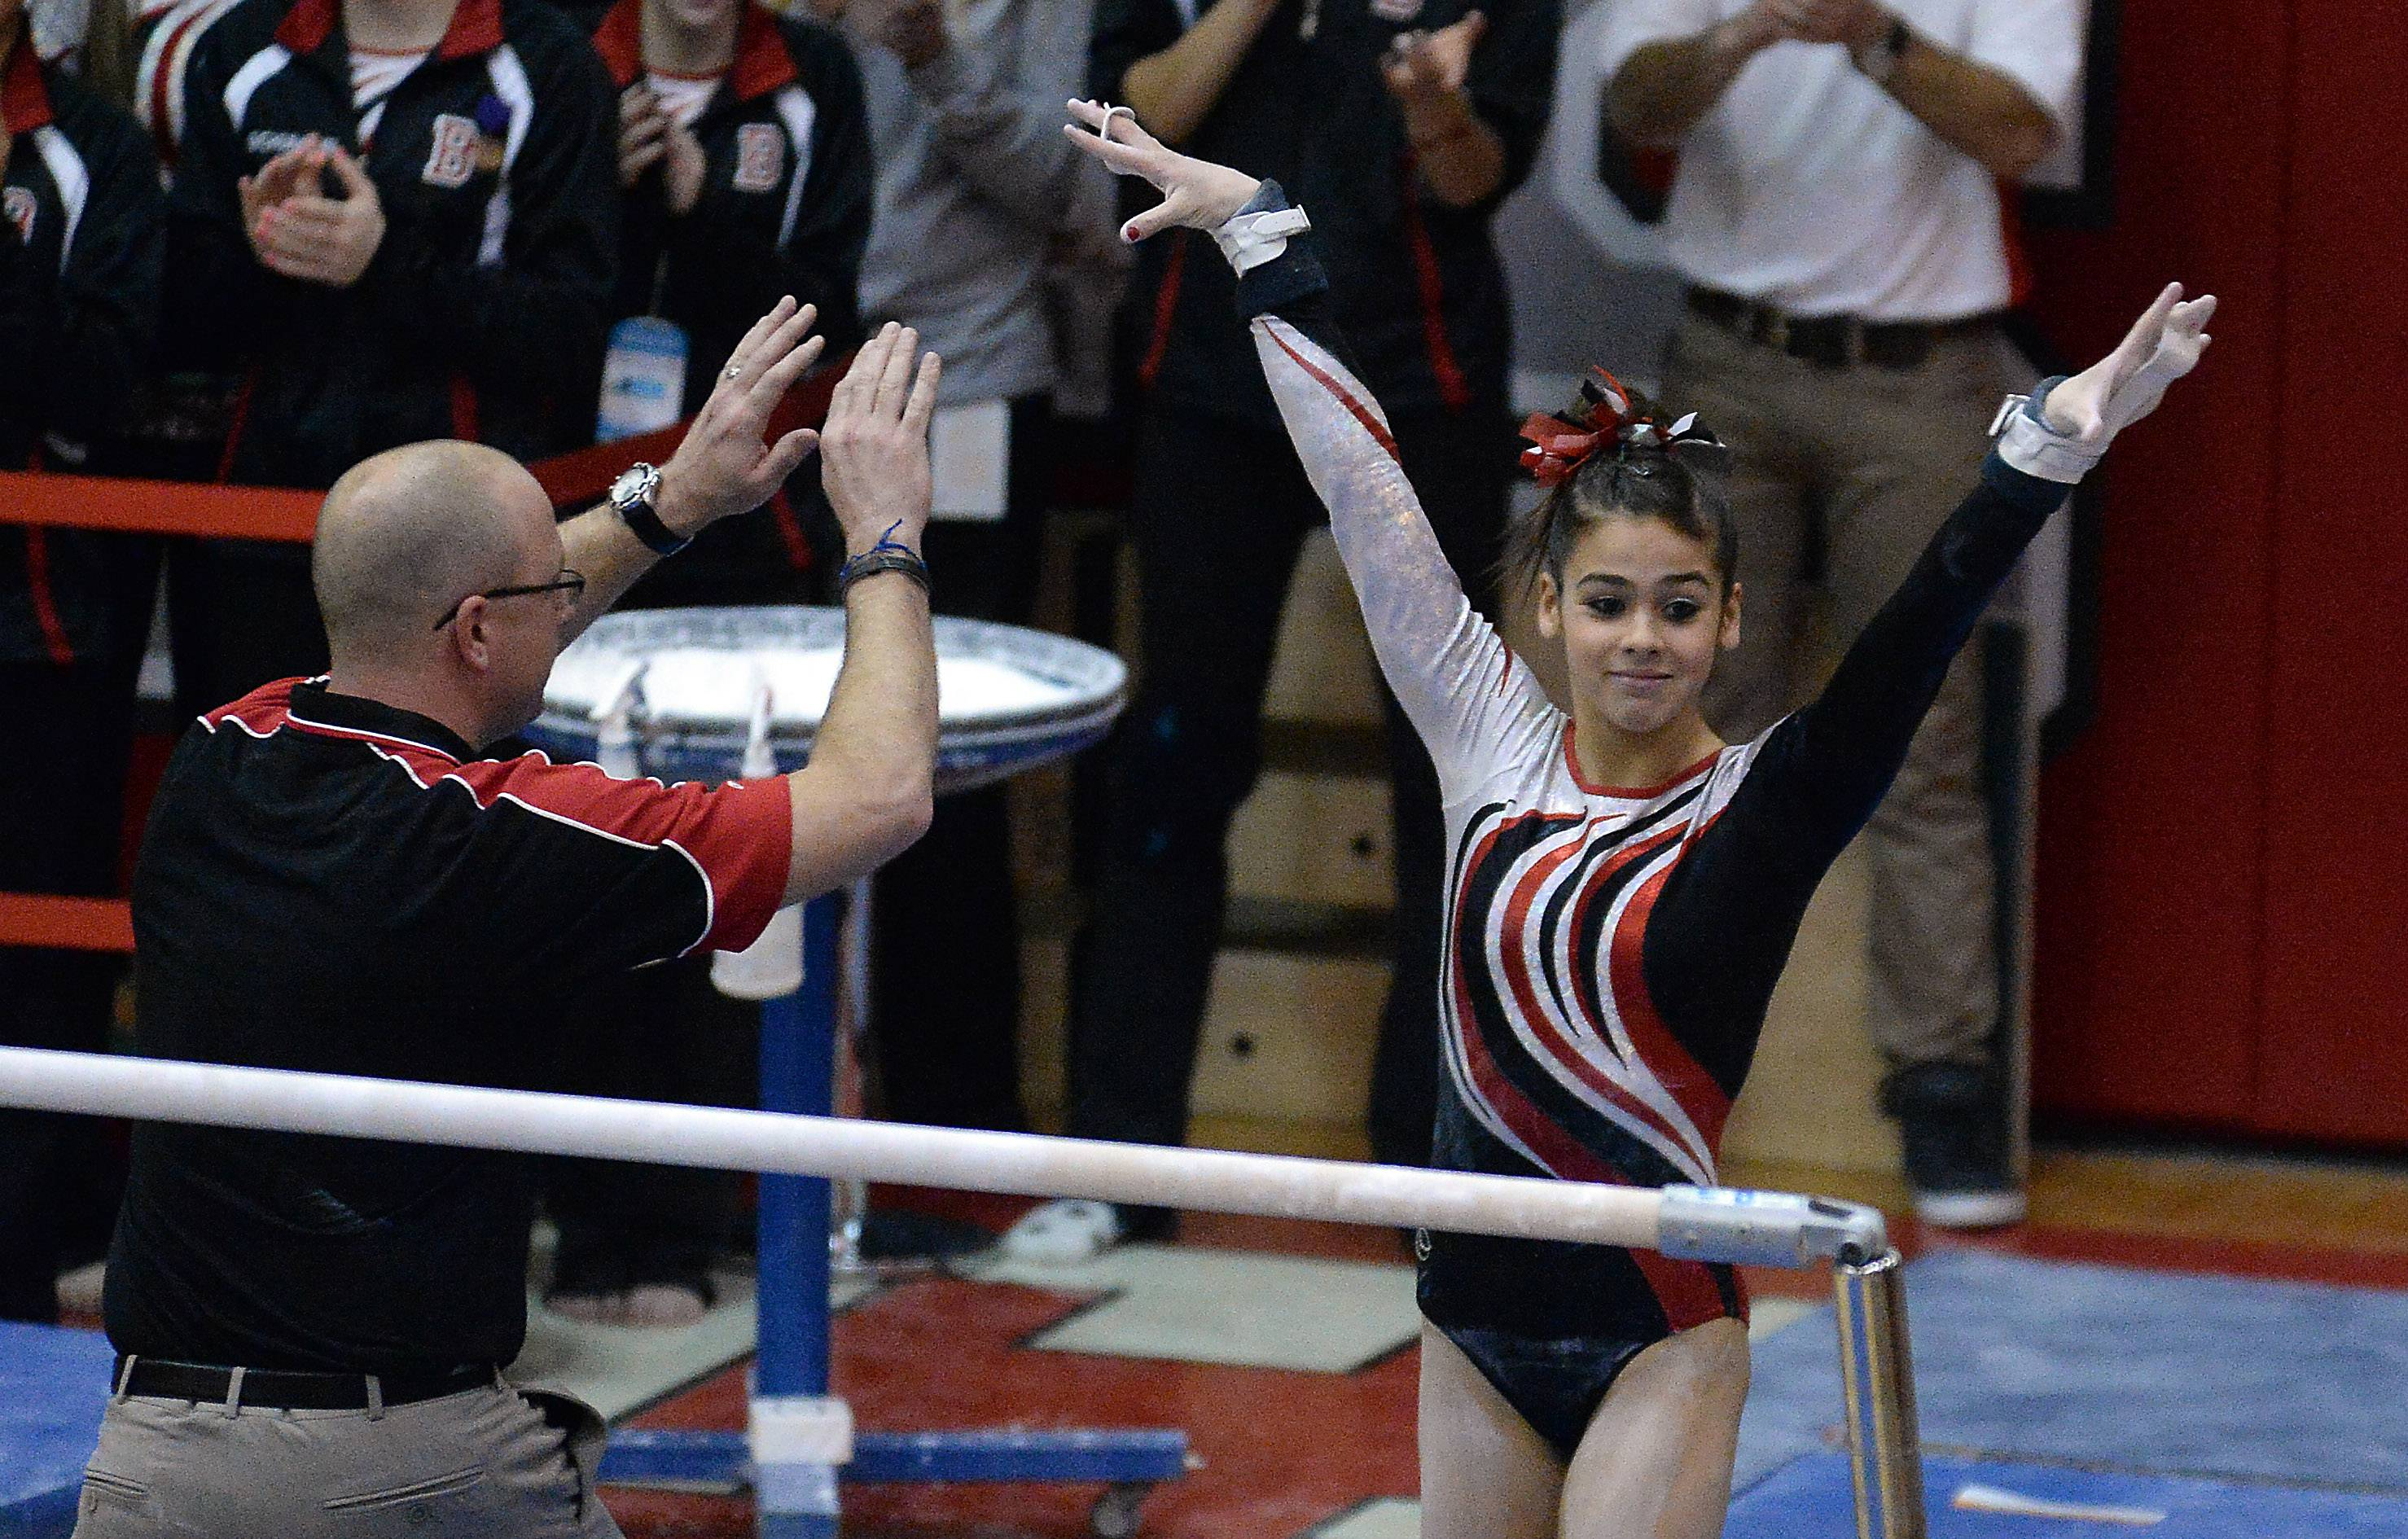 Barrington's Abby Hasanov celebrates her routine with her coach after competing on the uneven parallel bars in the girls gymnastics state meet in Palatine on Friday.